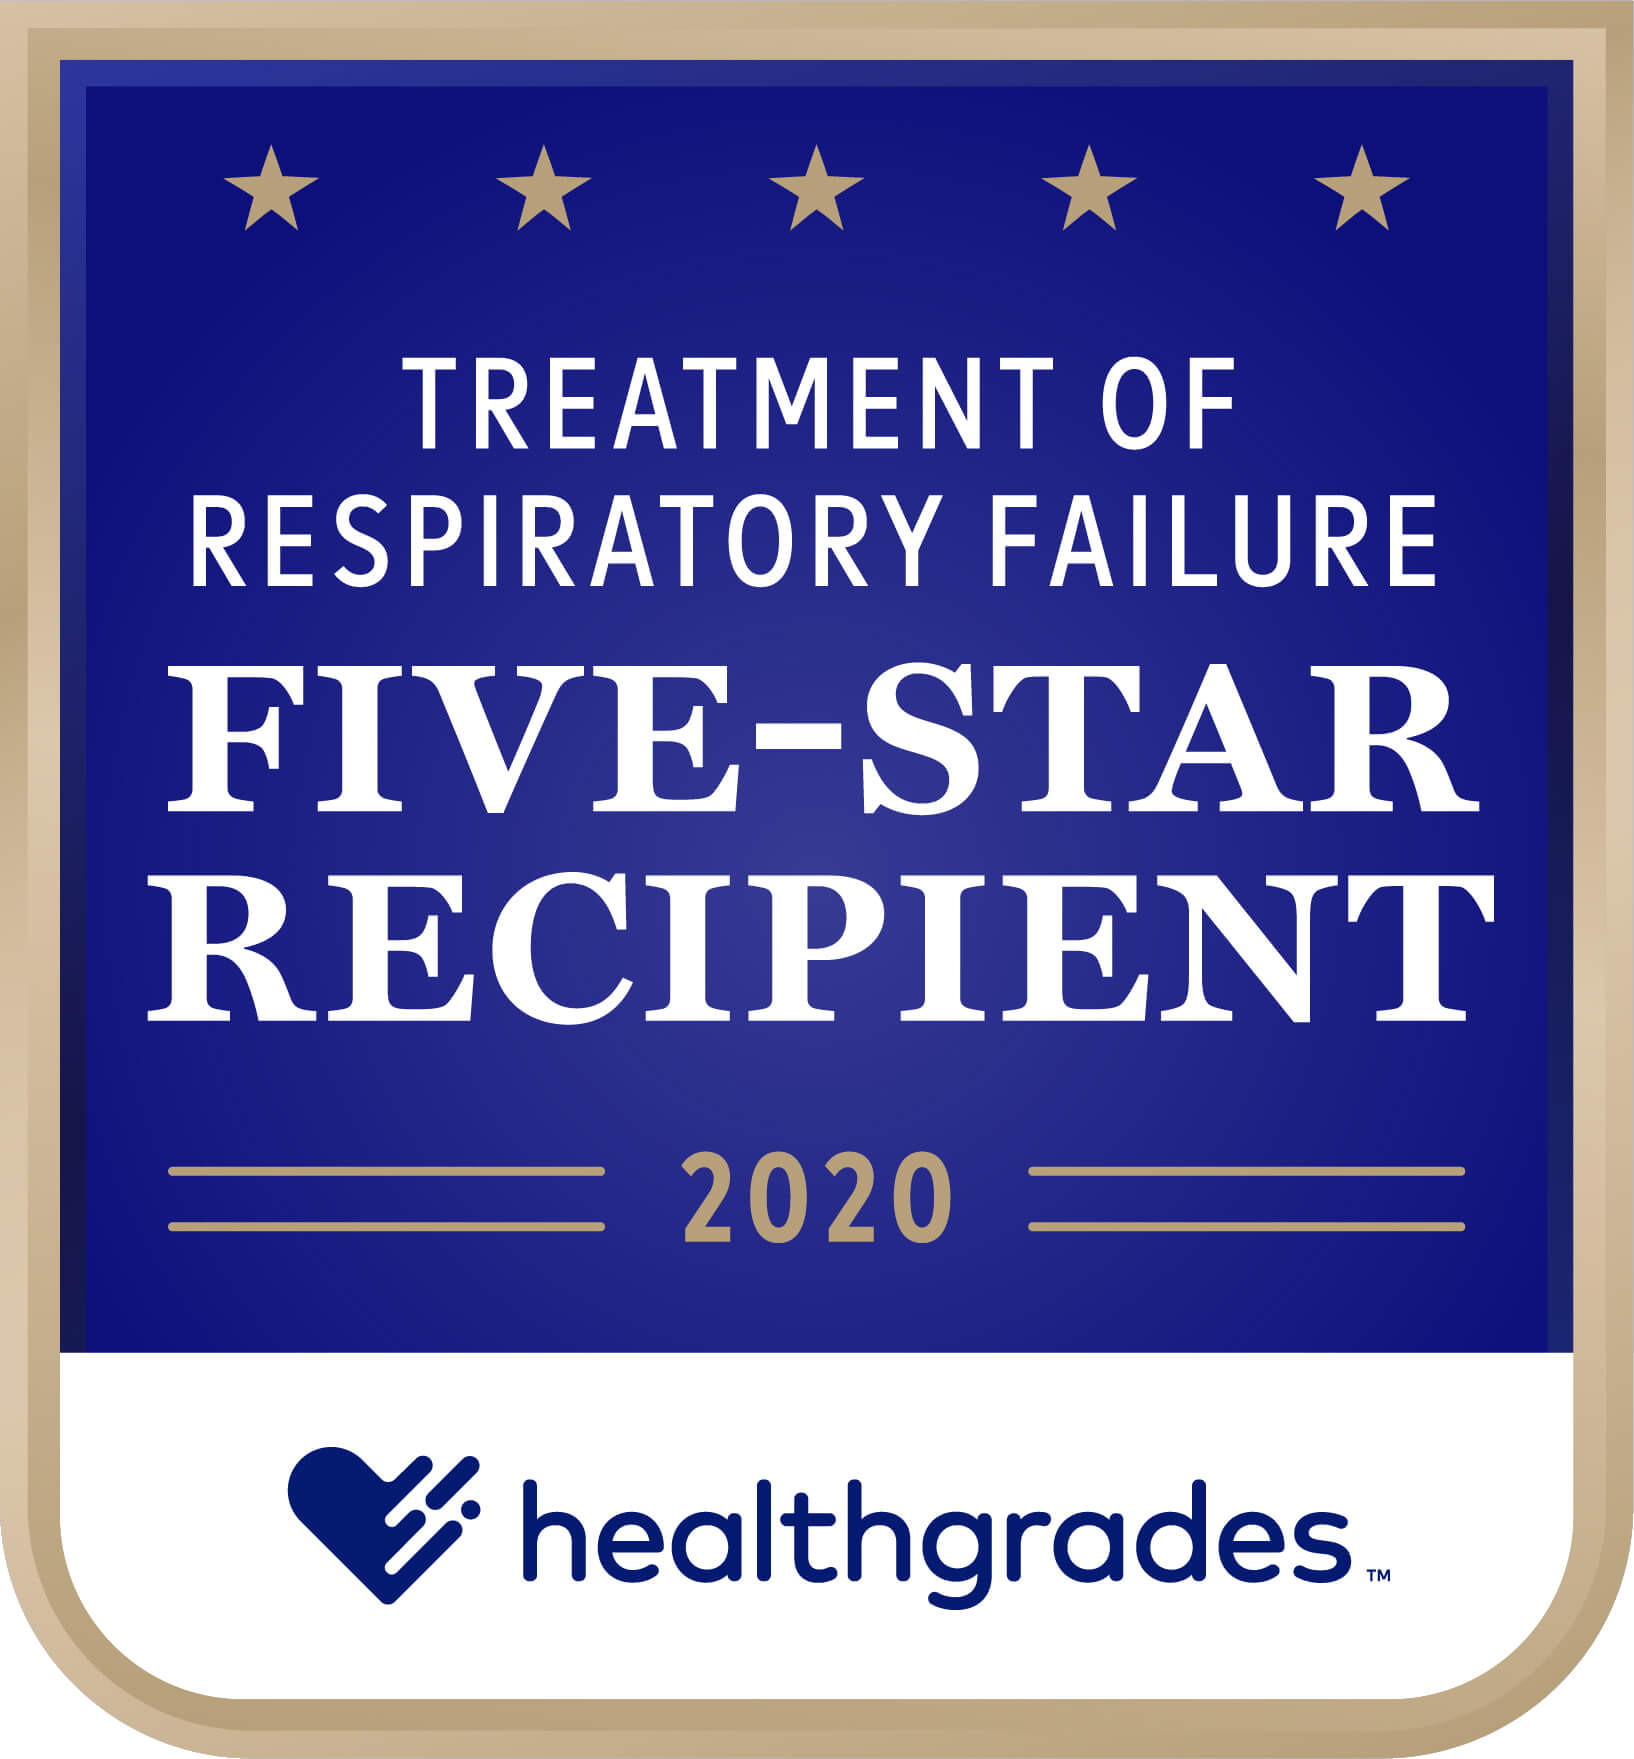 Healthgrades Five-Star Recipient for Treatment of Respiratory Failure Award 2020